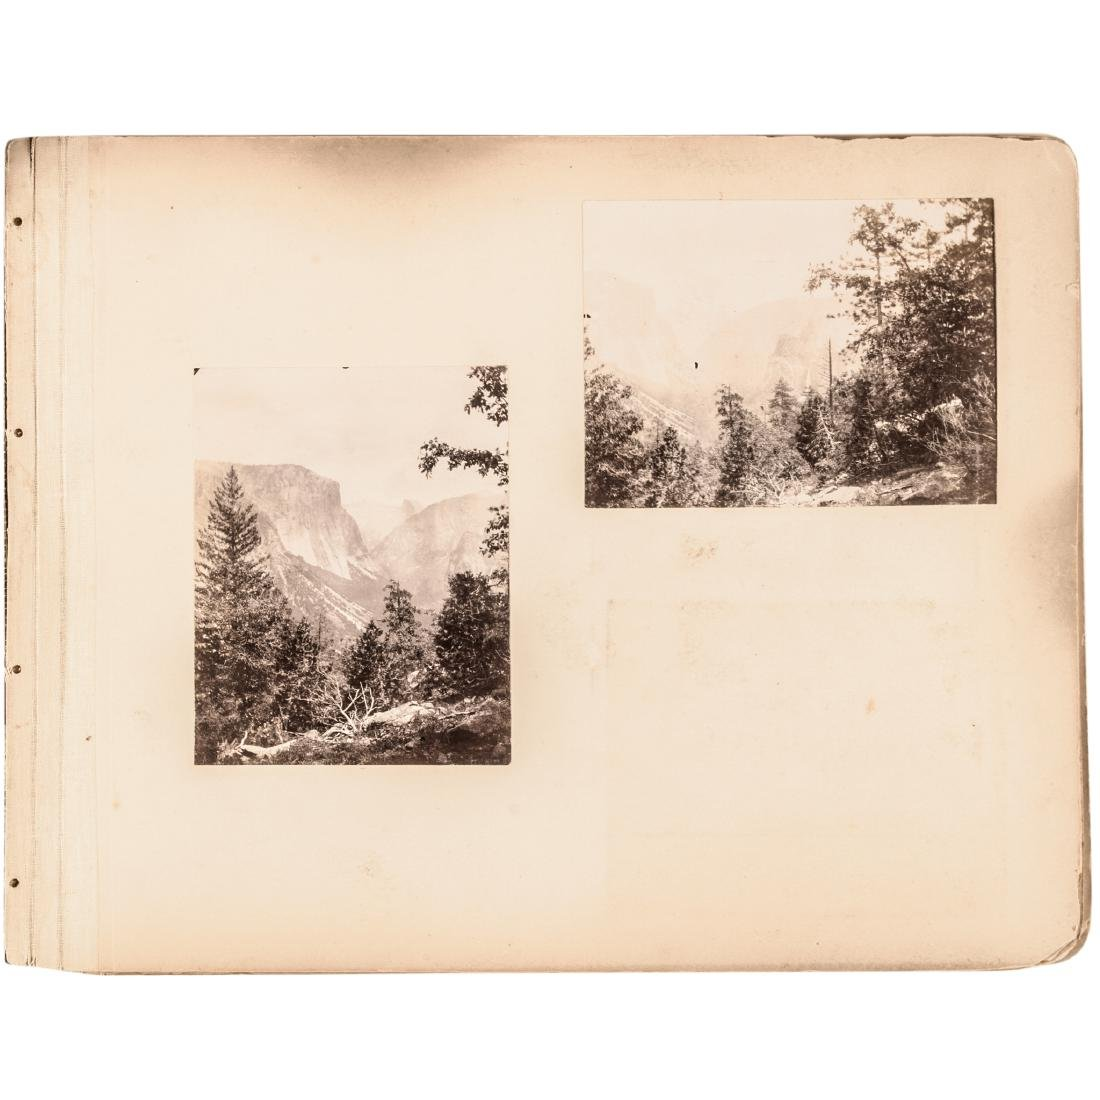 1882 Album 25 Historical Yosemite Calif. Photos - 2